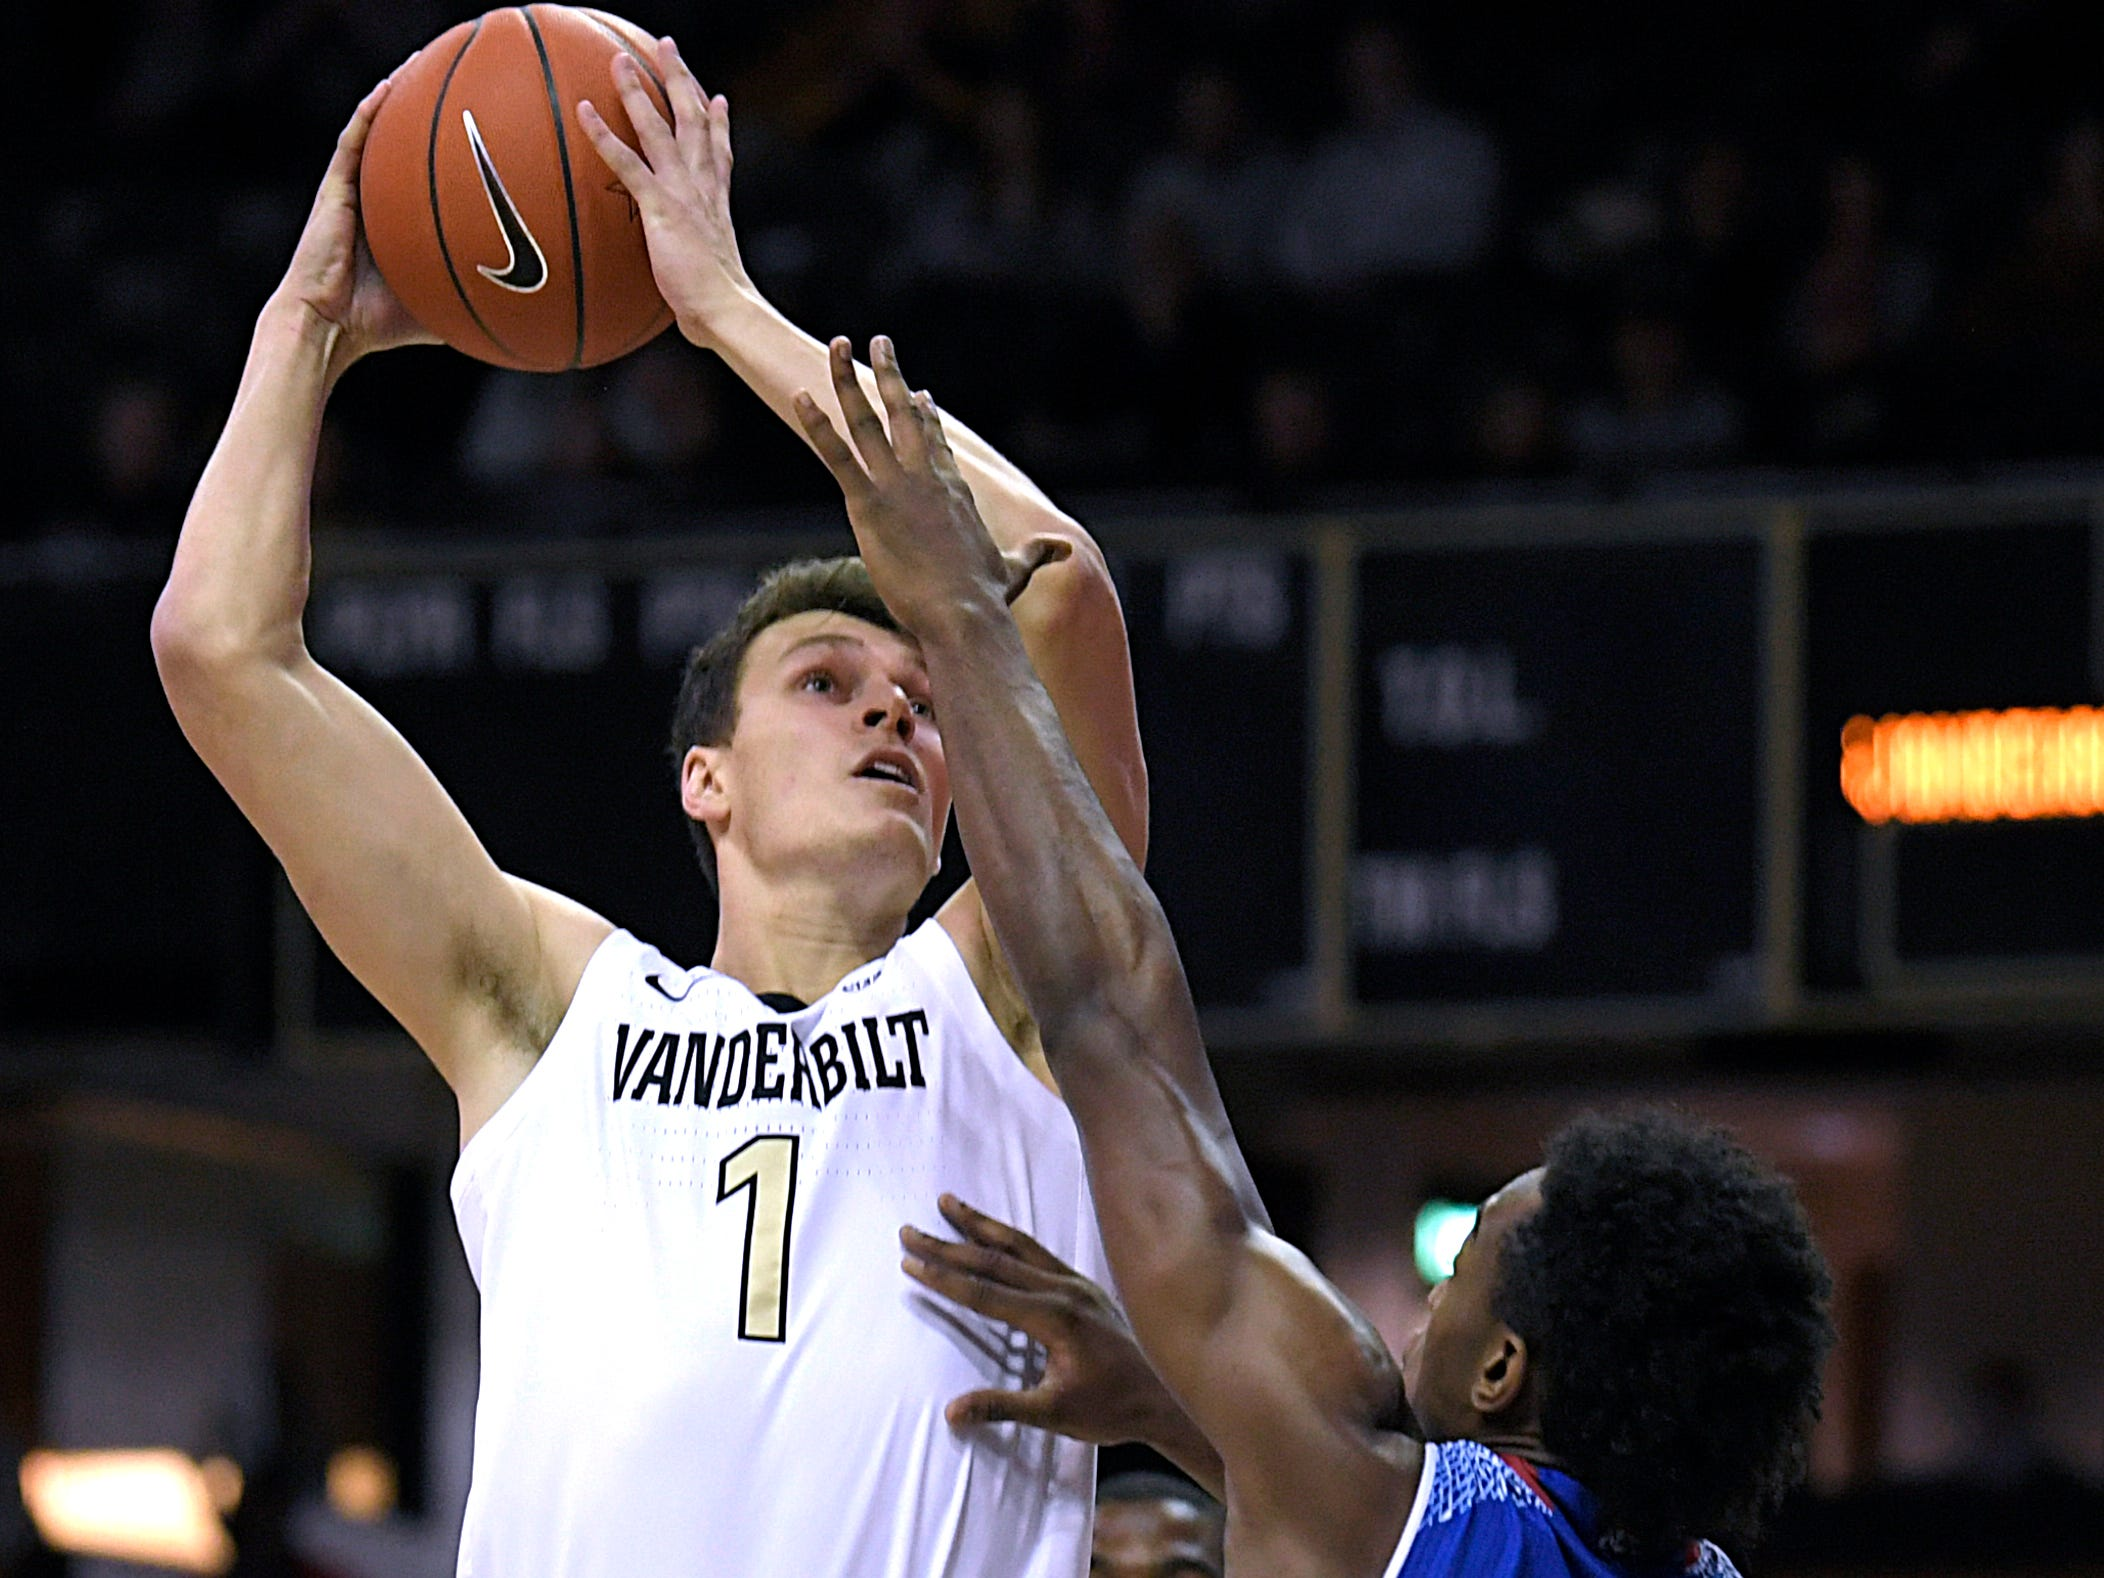 Vanderbilt forward Yanni Wetzell (1) shoots against Tennessee State forward Stokley Chaffee Jr. (30) during a game at Memorial Gym in Nashville on Saturday, Dec. 29, 2018.